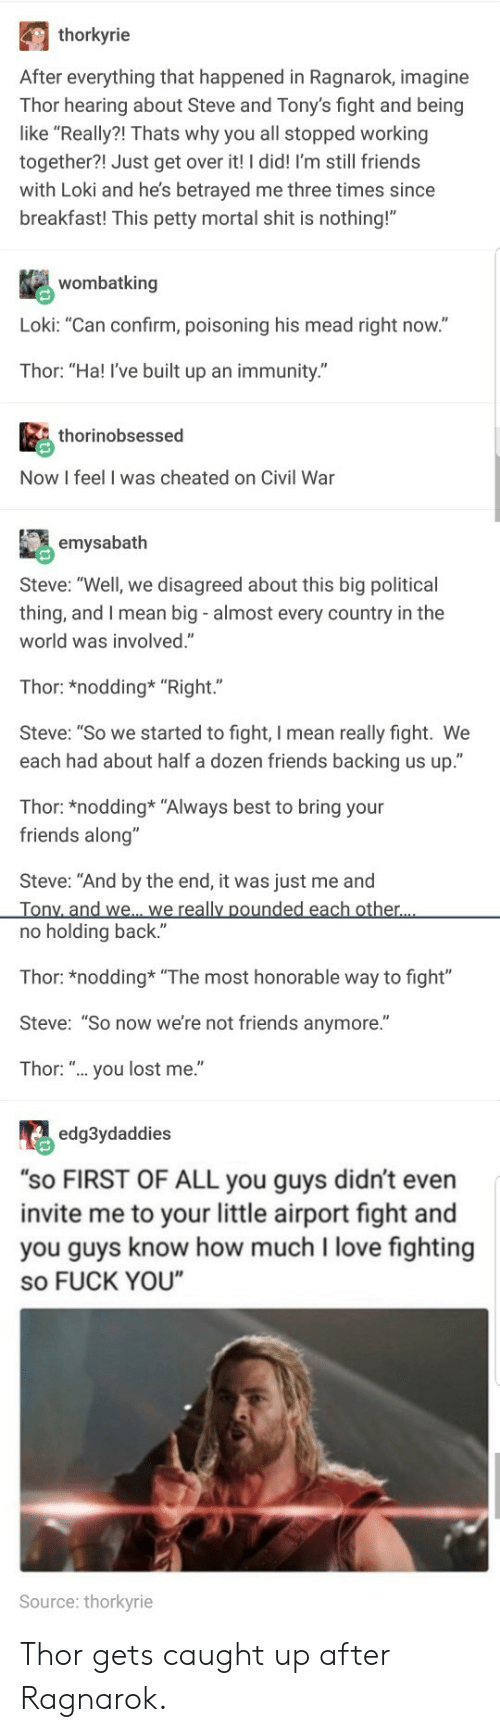 "Friends, Fuck You, and Love: thorkyrie  After everything that happened in Ragnarok, imagine  Thor hearing about Steve and Tony's fight and being  like ""Really?! Thats why you all stopped working  together?! Just get over it! I did! I'm still friends  with Loki and he's betrayed me three times since  breakfast! This petty mortal shit is nothing!""  wombatking  Loki: ""Can confirm, poisoning his mead right now.""  Thor: ""Ha! I've built up an immunity.""  thorinobsessed  Now I feel I was cheated on Civil War  emysabath  Steve: ""Well, we disagreed about this big political  thing, and I mean big - almost every country in the  world was involved.""  Thor: *nodding* ""Right.""  Steve: ""So we started to fight, I mean really fight. We  each had about half a dozen friends backing us up.""  Thor: *nodding* ""Always best to bring your  friends along""  Steve: ""And by the end, it was just me and  no holding back.""  Thor: *nodding ""The most honorable way to fight""  Steve: ""So now we're not friends anymore.""  Thor: "".. you lost me.""  edg3ydaddies  ""sO FIRST OF ALL you guys didn't even  invite me to your little airport fight and  you guys know how much I love fighting  so FUCK YOU  Source: thorkyrie Thor gets caught up after Ragnarok."